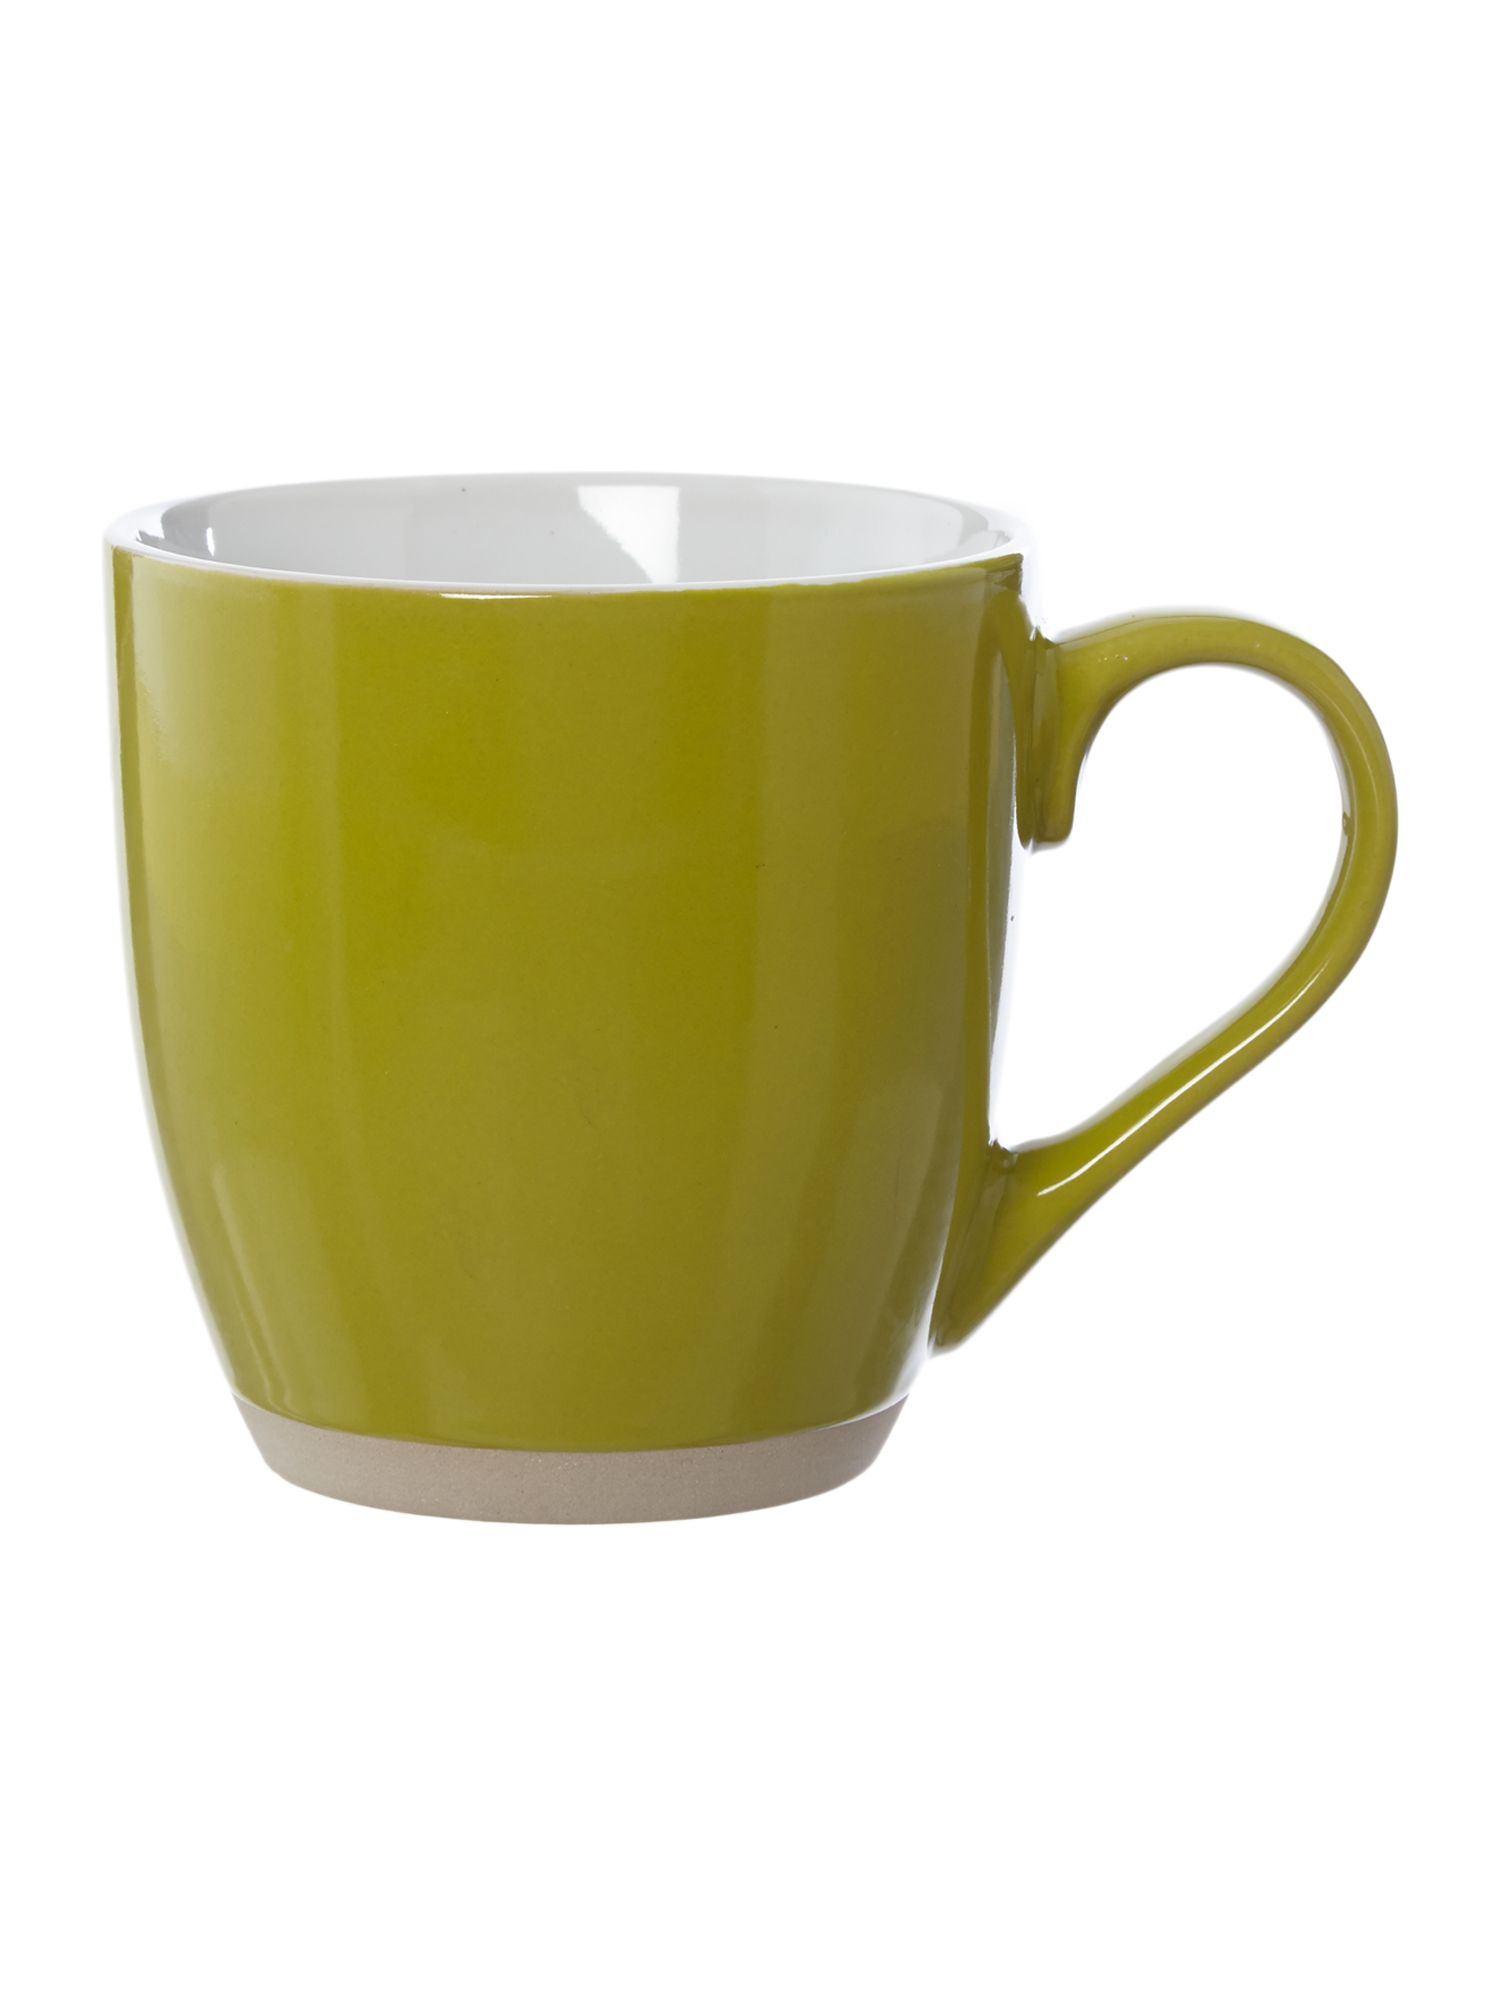 Avocado green mug